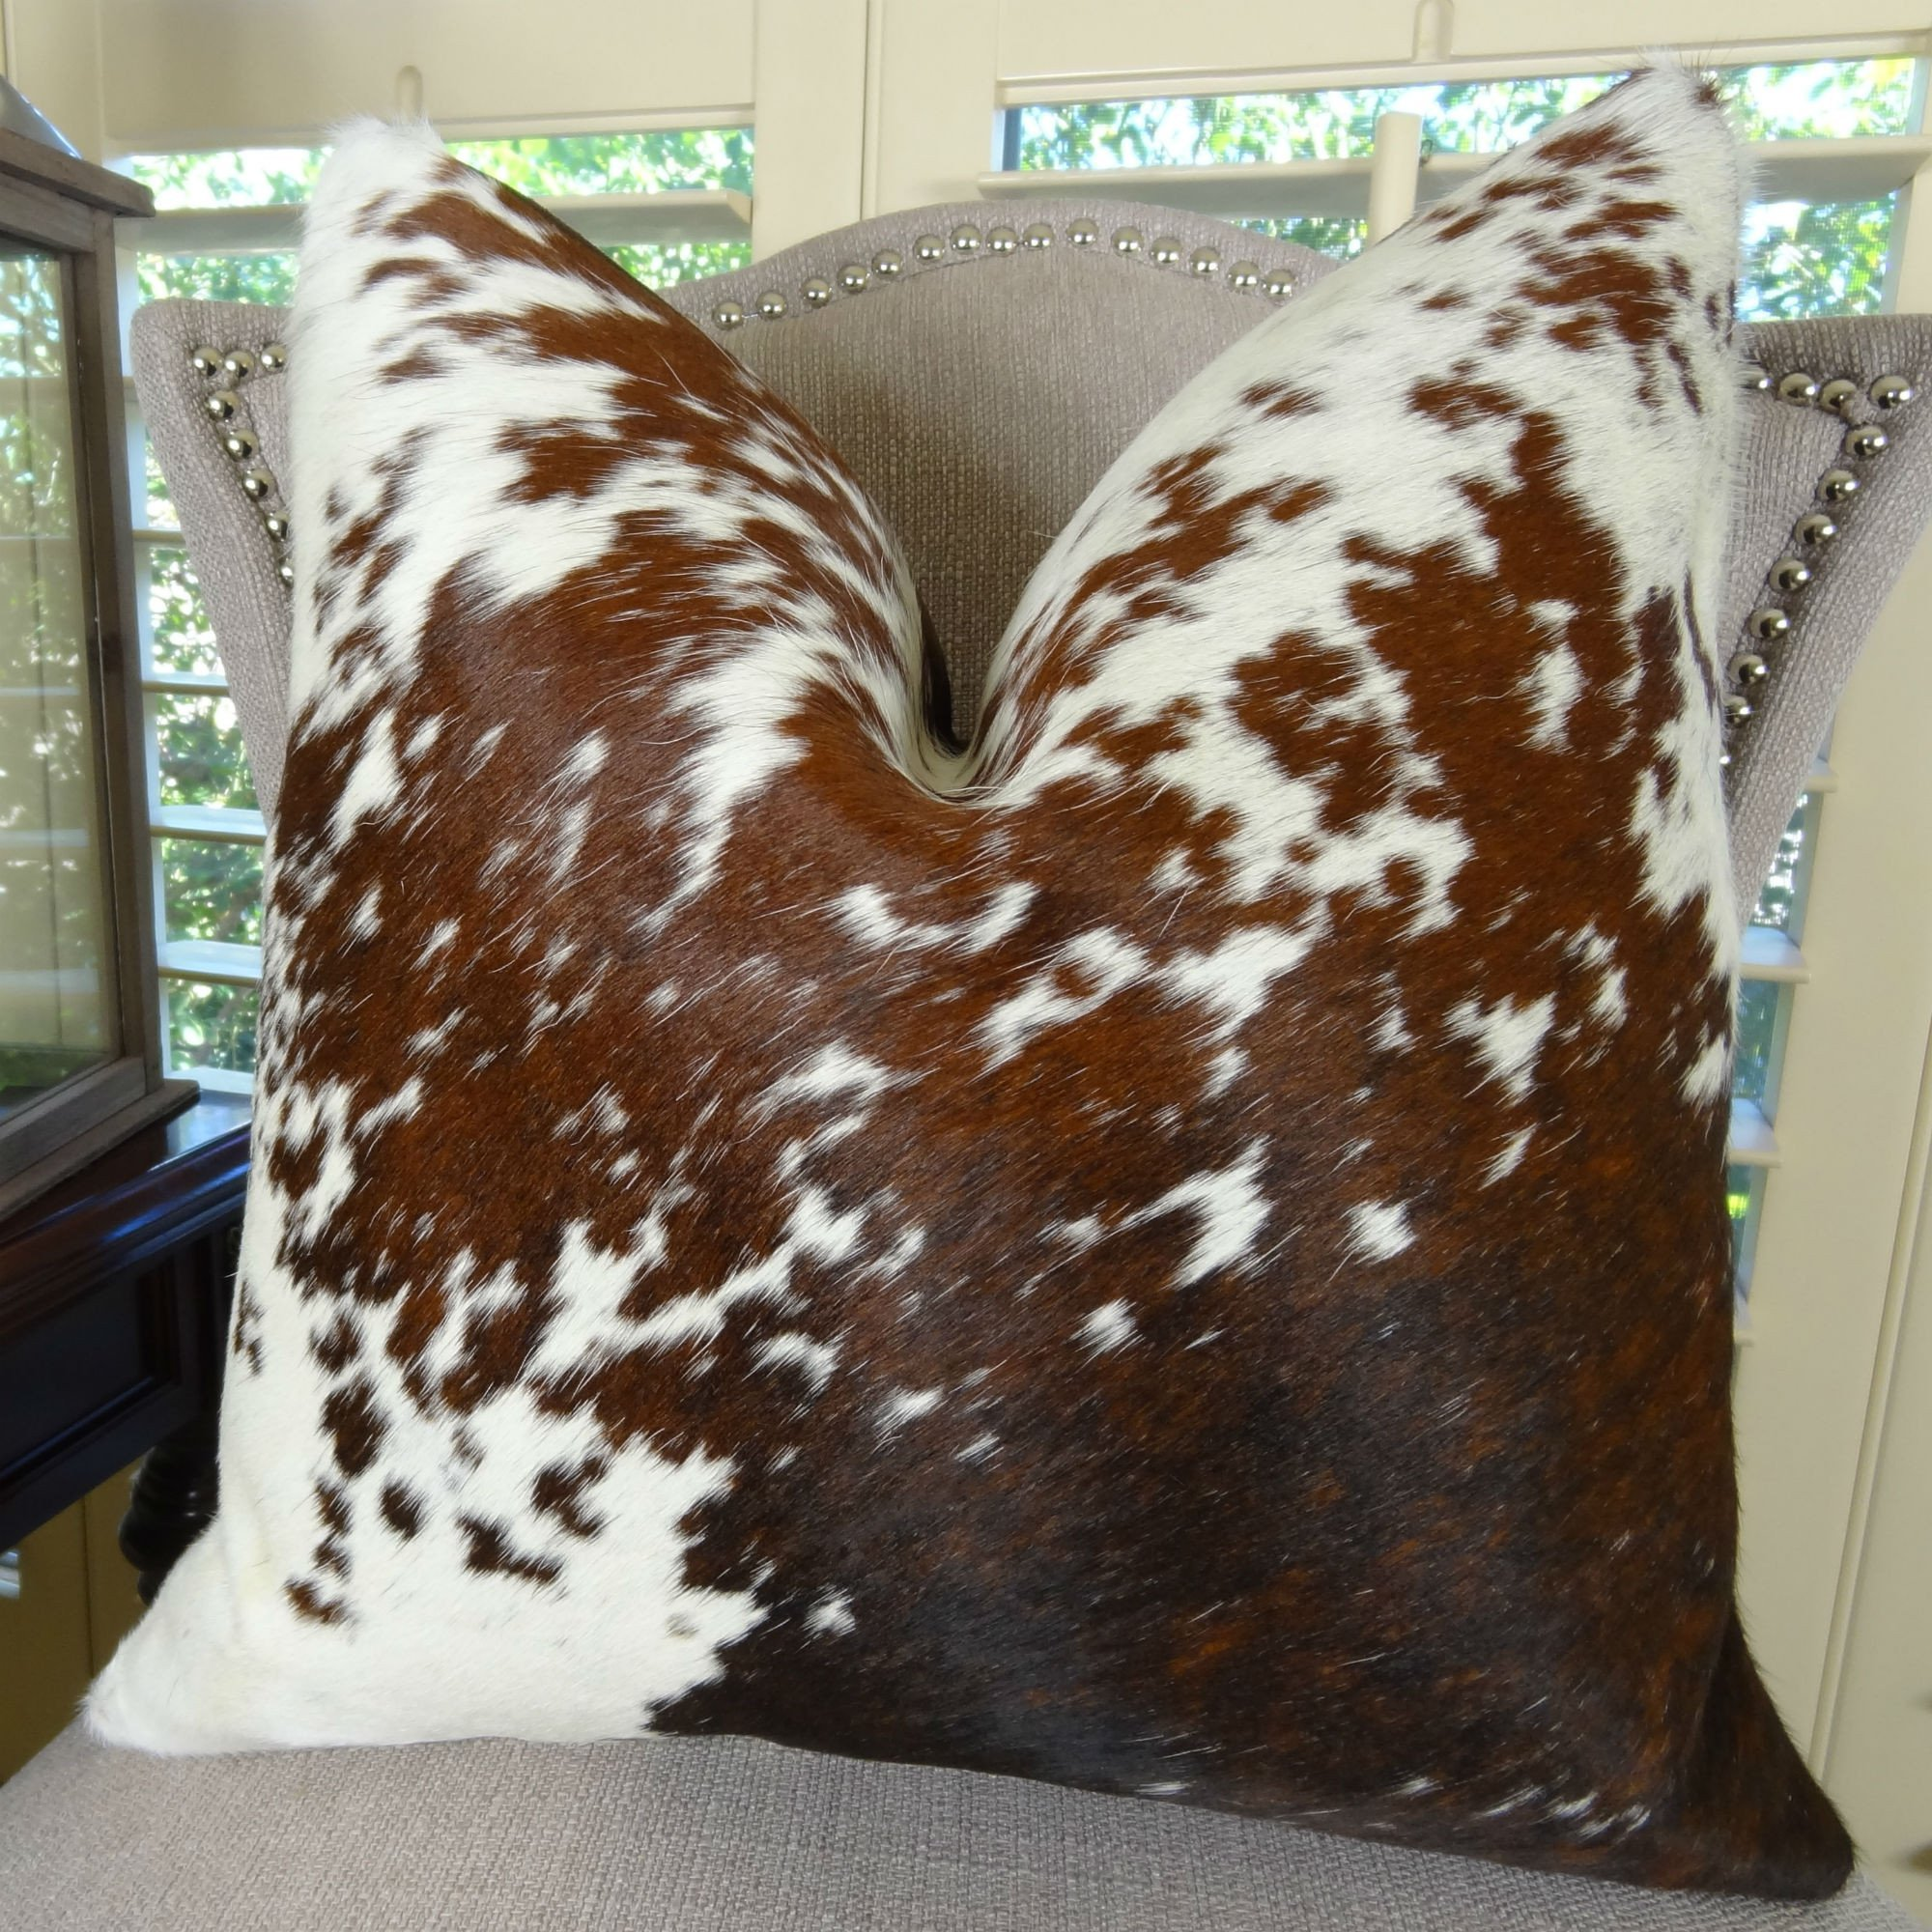 Thomas Collection Decorative Cowhide Throw Pillow, Brown White Cowhide Pillow, High End Cowhide Sofa Pillow, Brazilian Cowhide Accent Sofa Pillow, COVER ONLY, NO INSERT, Made in America, 16605 by Thomas Collection